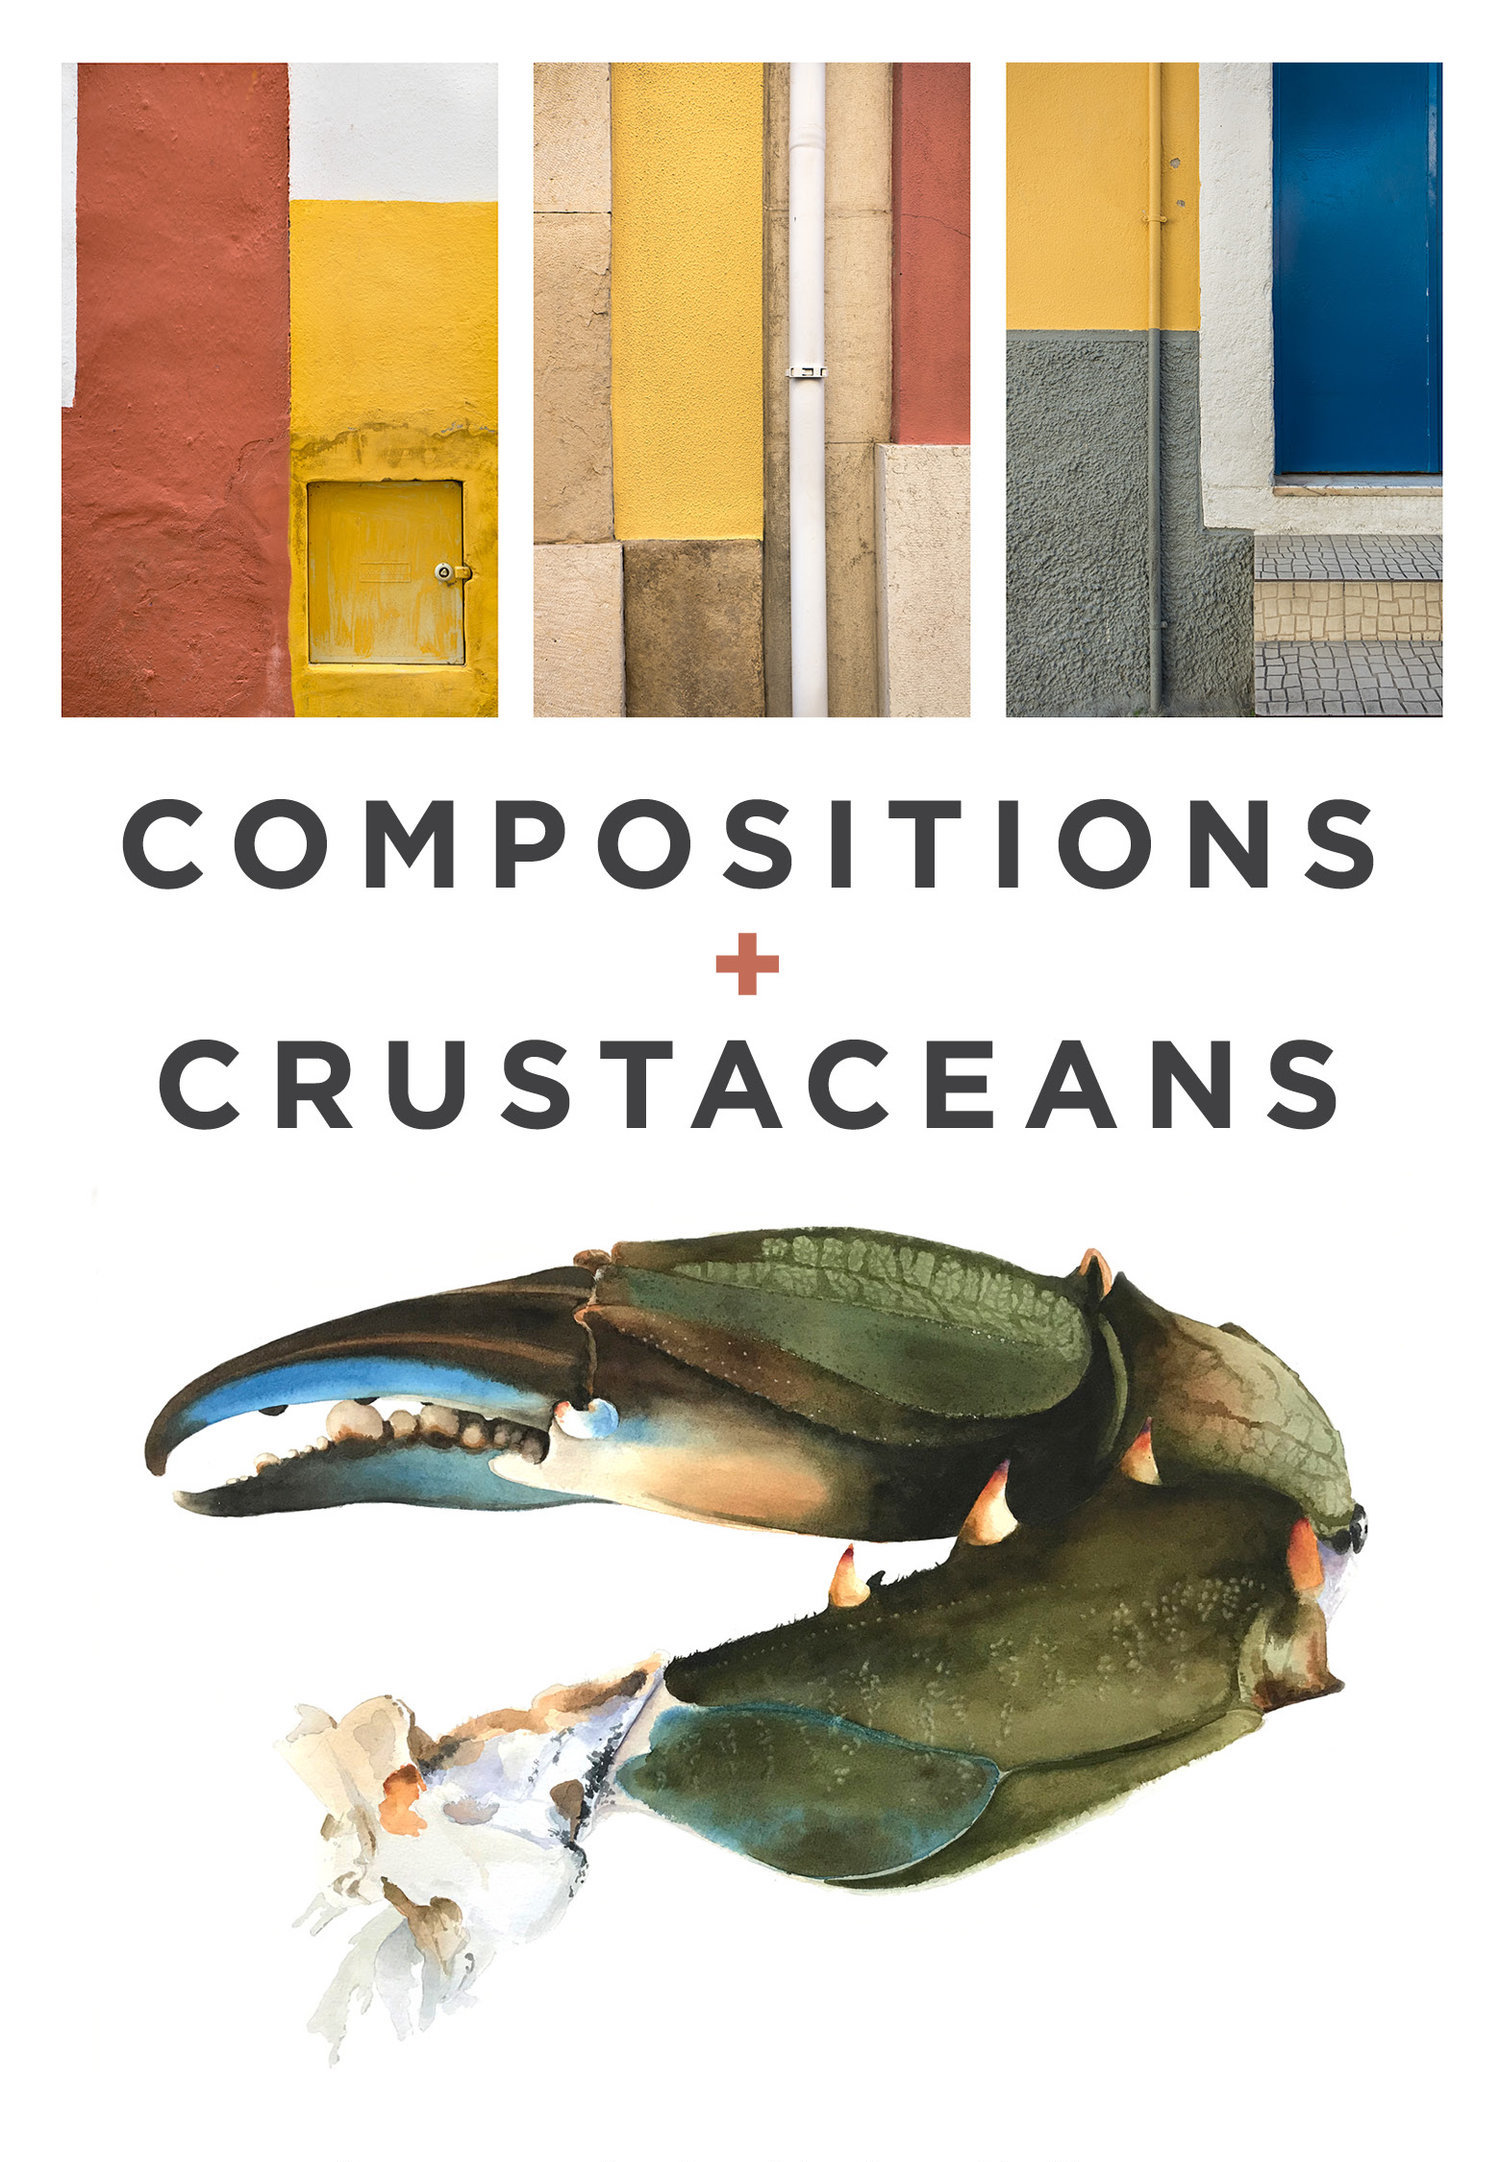 COMPOSITIONS+AND+CRUSTACEANS+FINAL.jpg